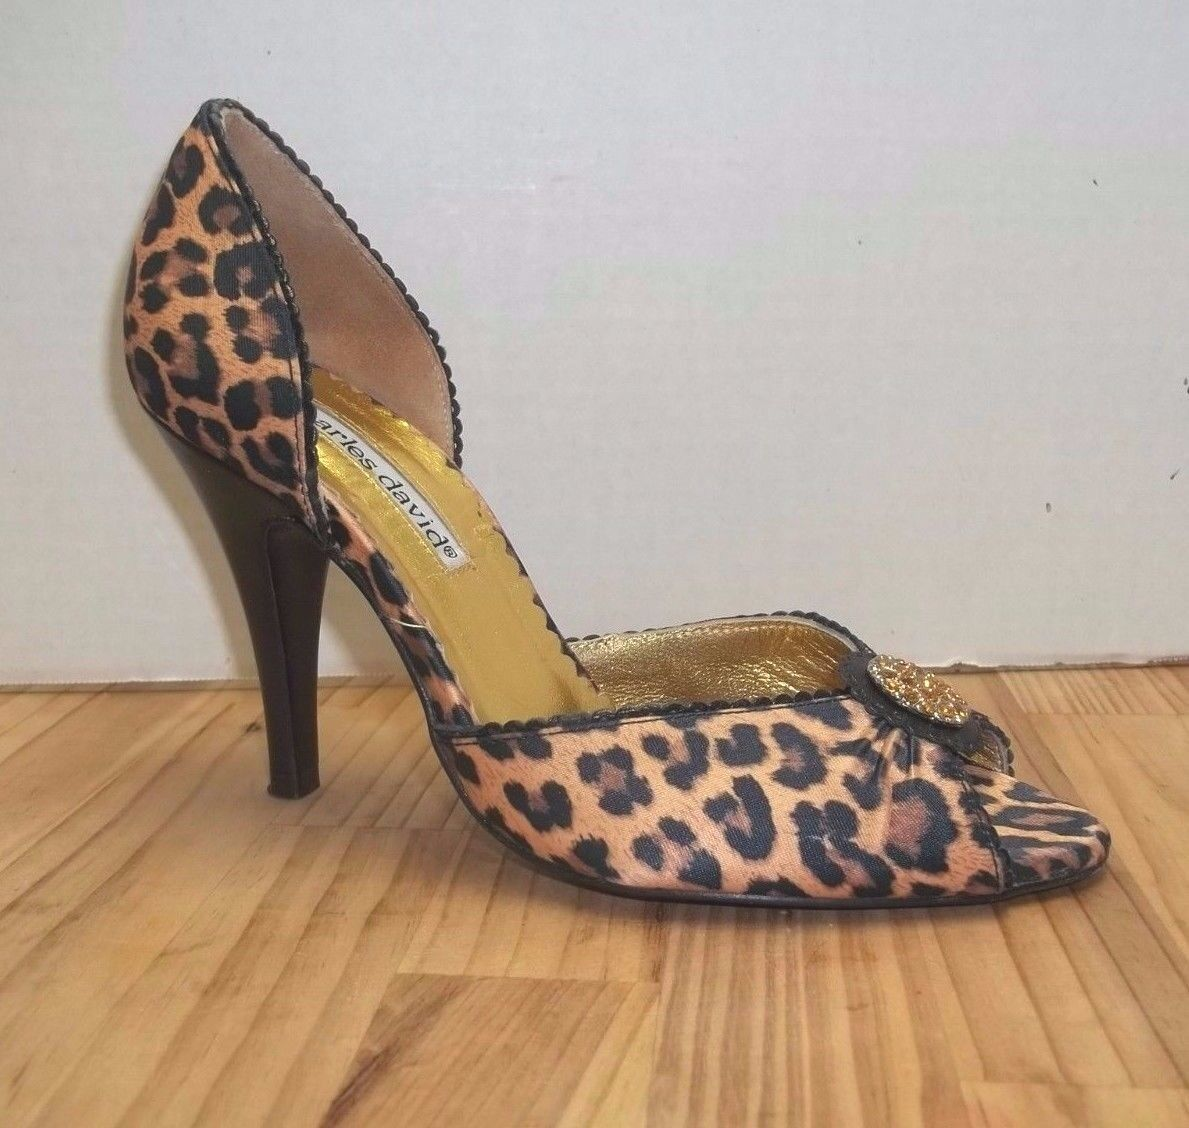 Charles David Leopard Heels Jeweled Jeweled Jeweled Open Toe 3 3 4 Inch Heel Sz 5 1 2 Gorgeous 4a5be2